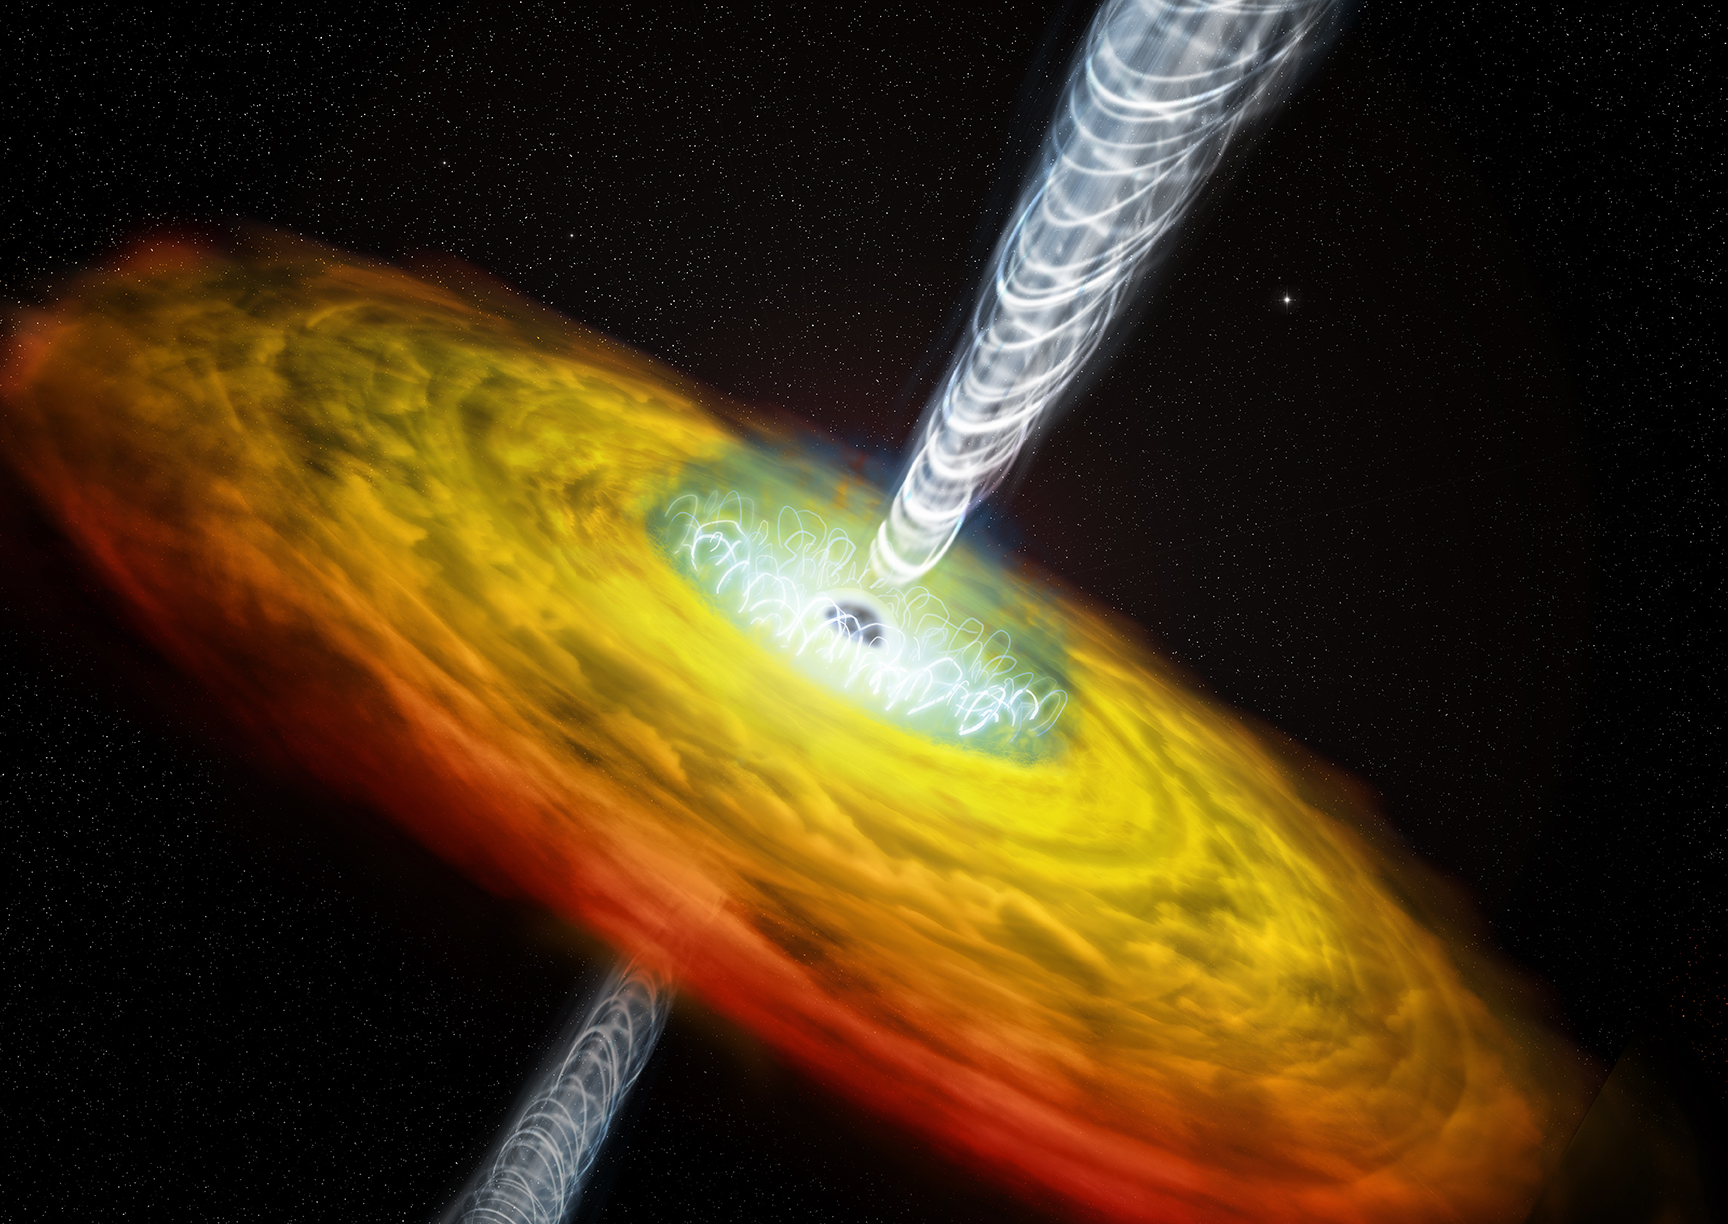 Illusttration of supermassive black hole with coronoa and jets